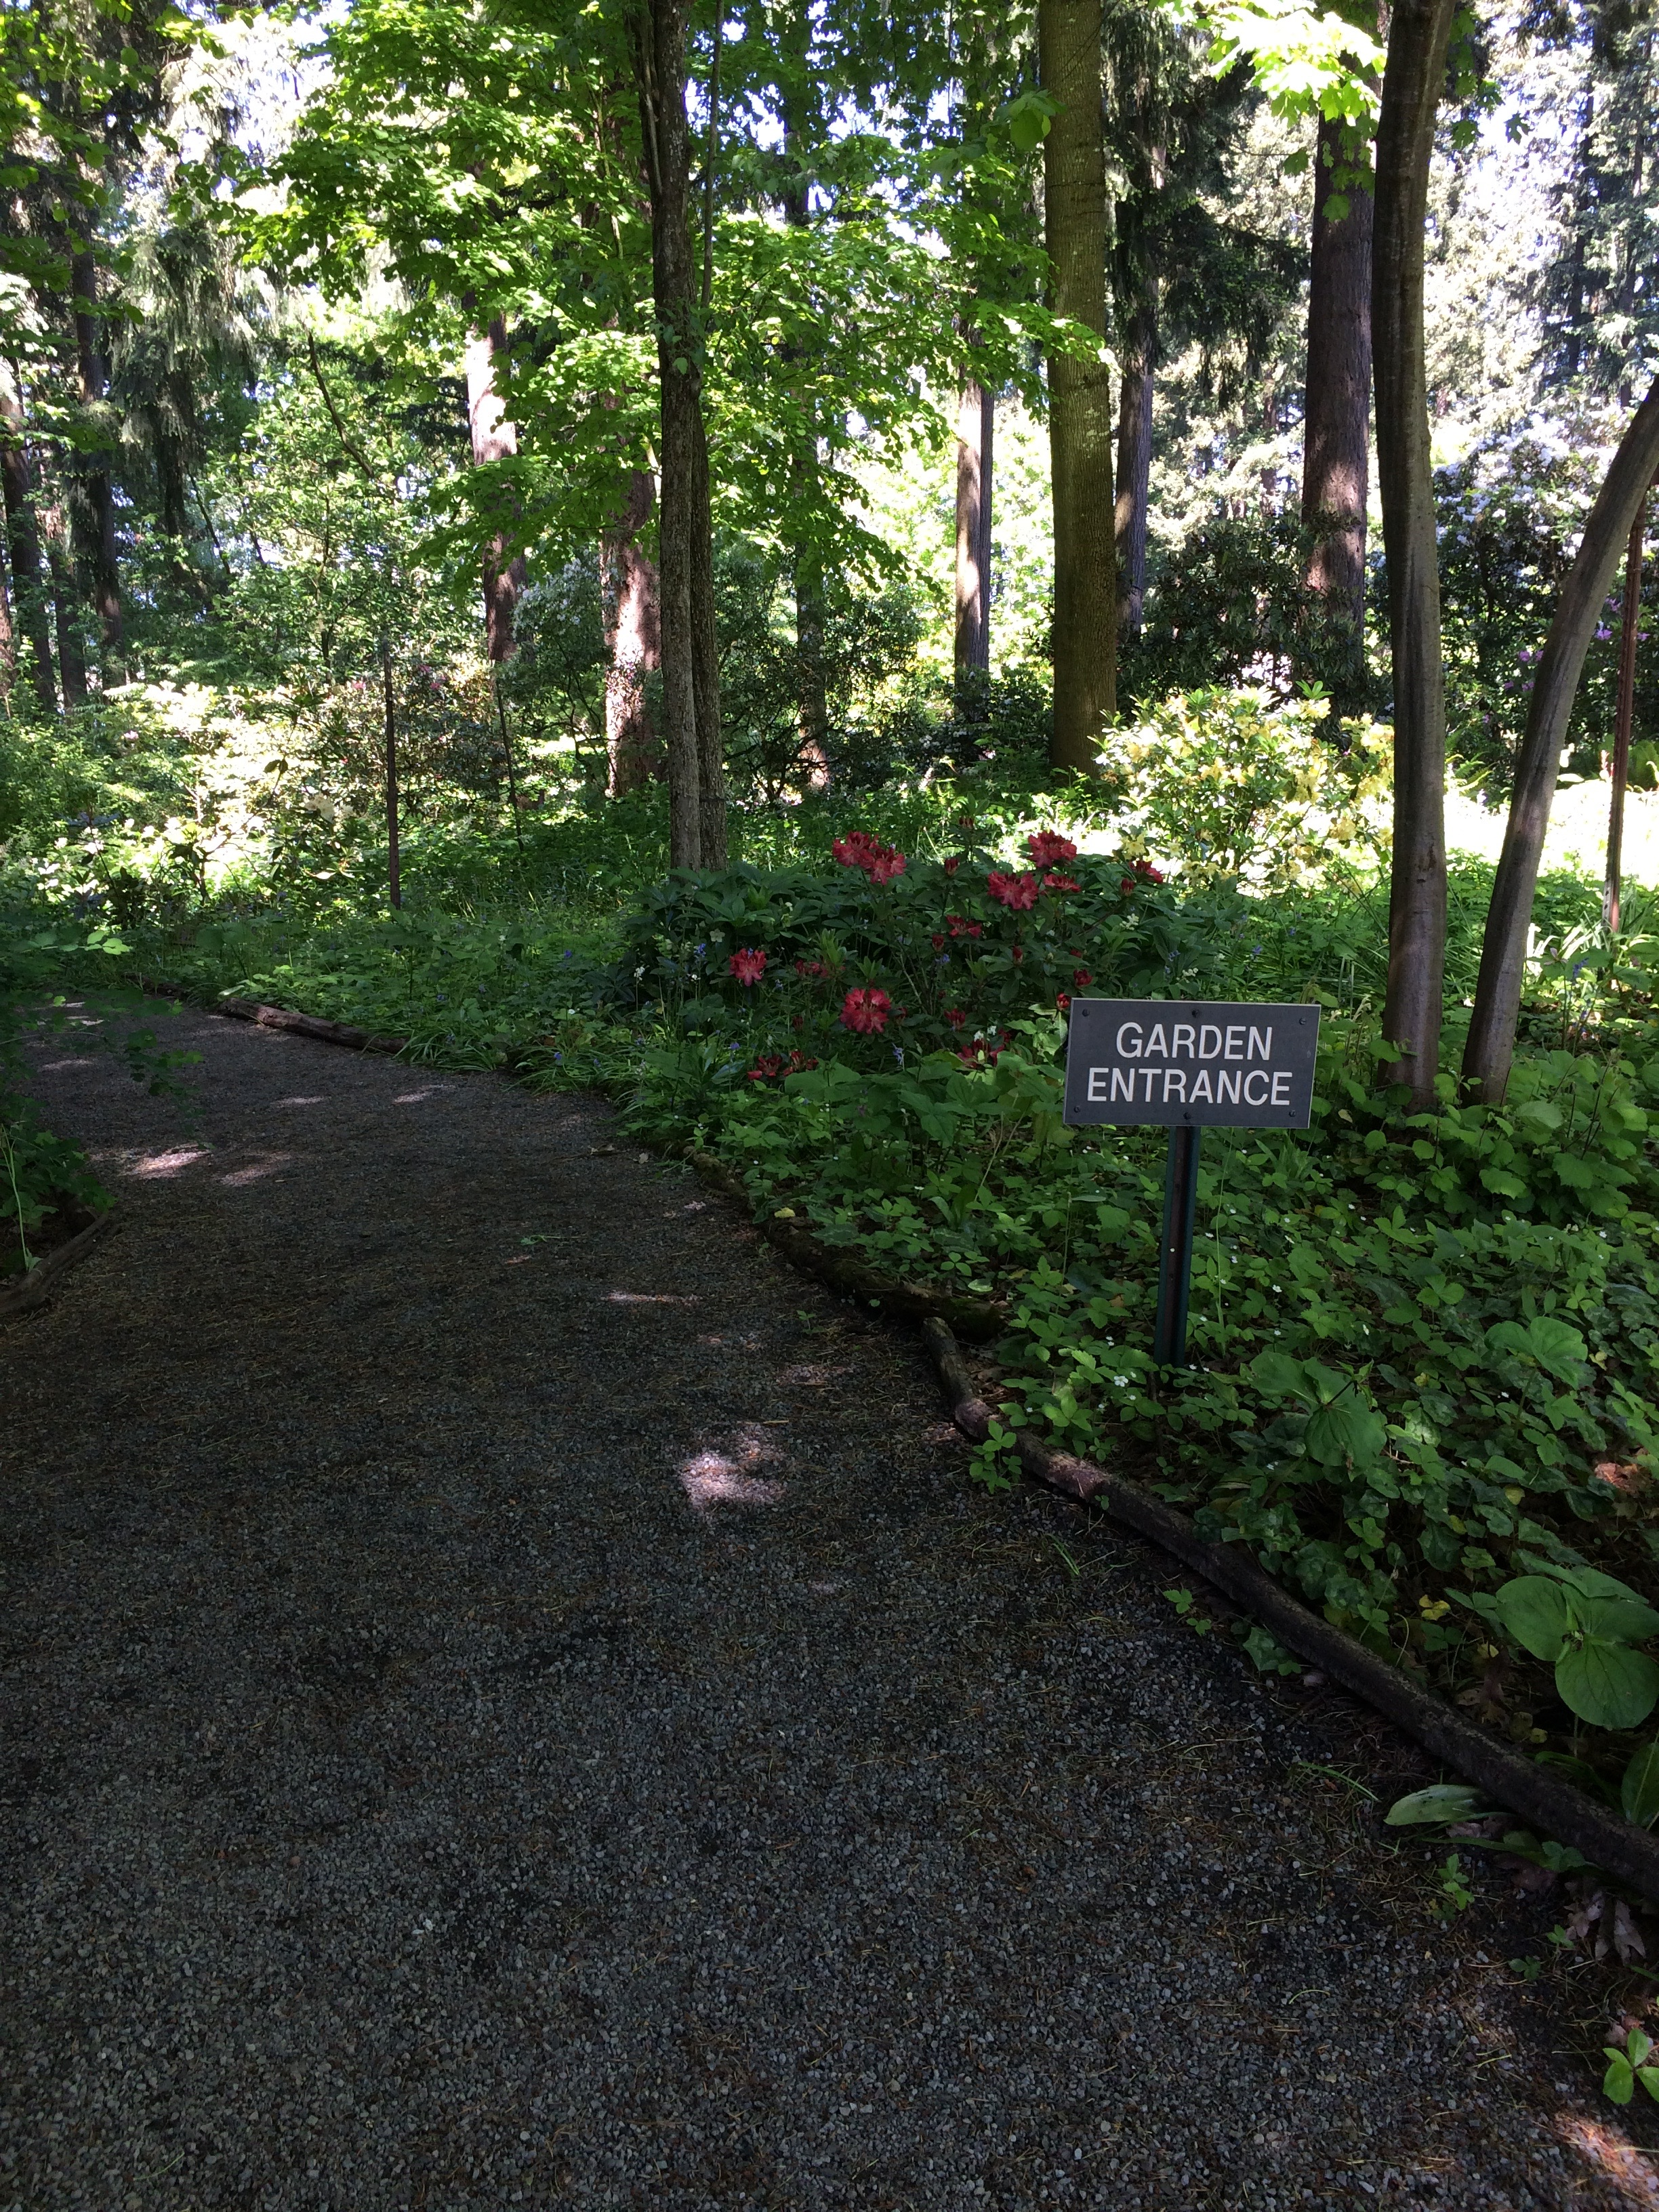 High Quality Run By The Portland Chapter Of The American Rhododendron Society, The Cecil  U0026 Molly Smith Garden Is Only Open For Limited Visits During The Months Of  April ...